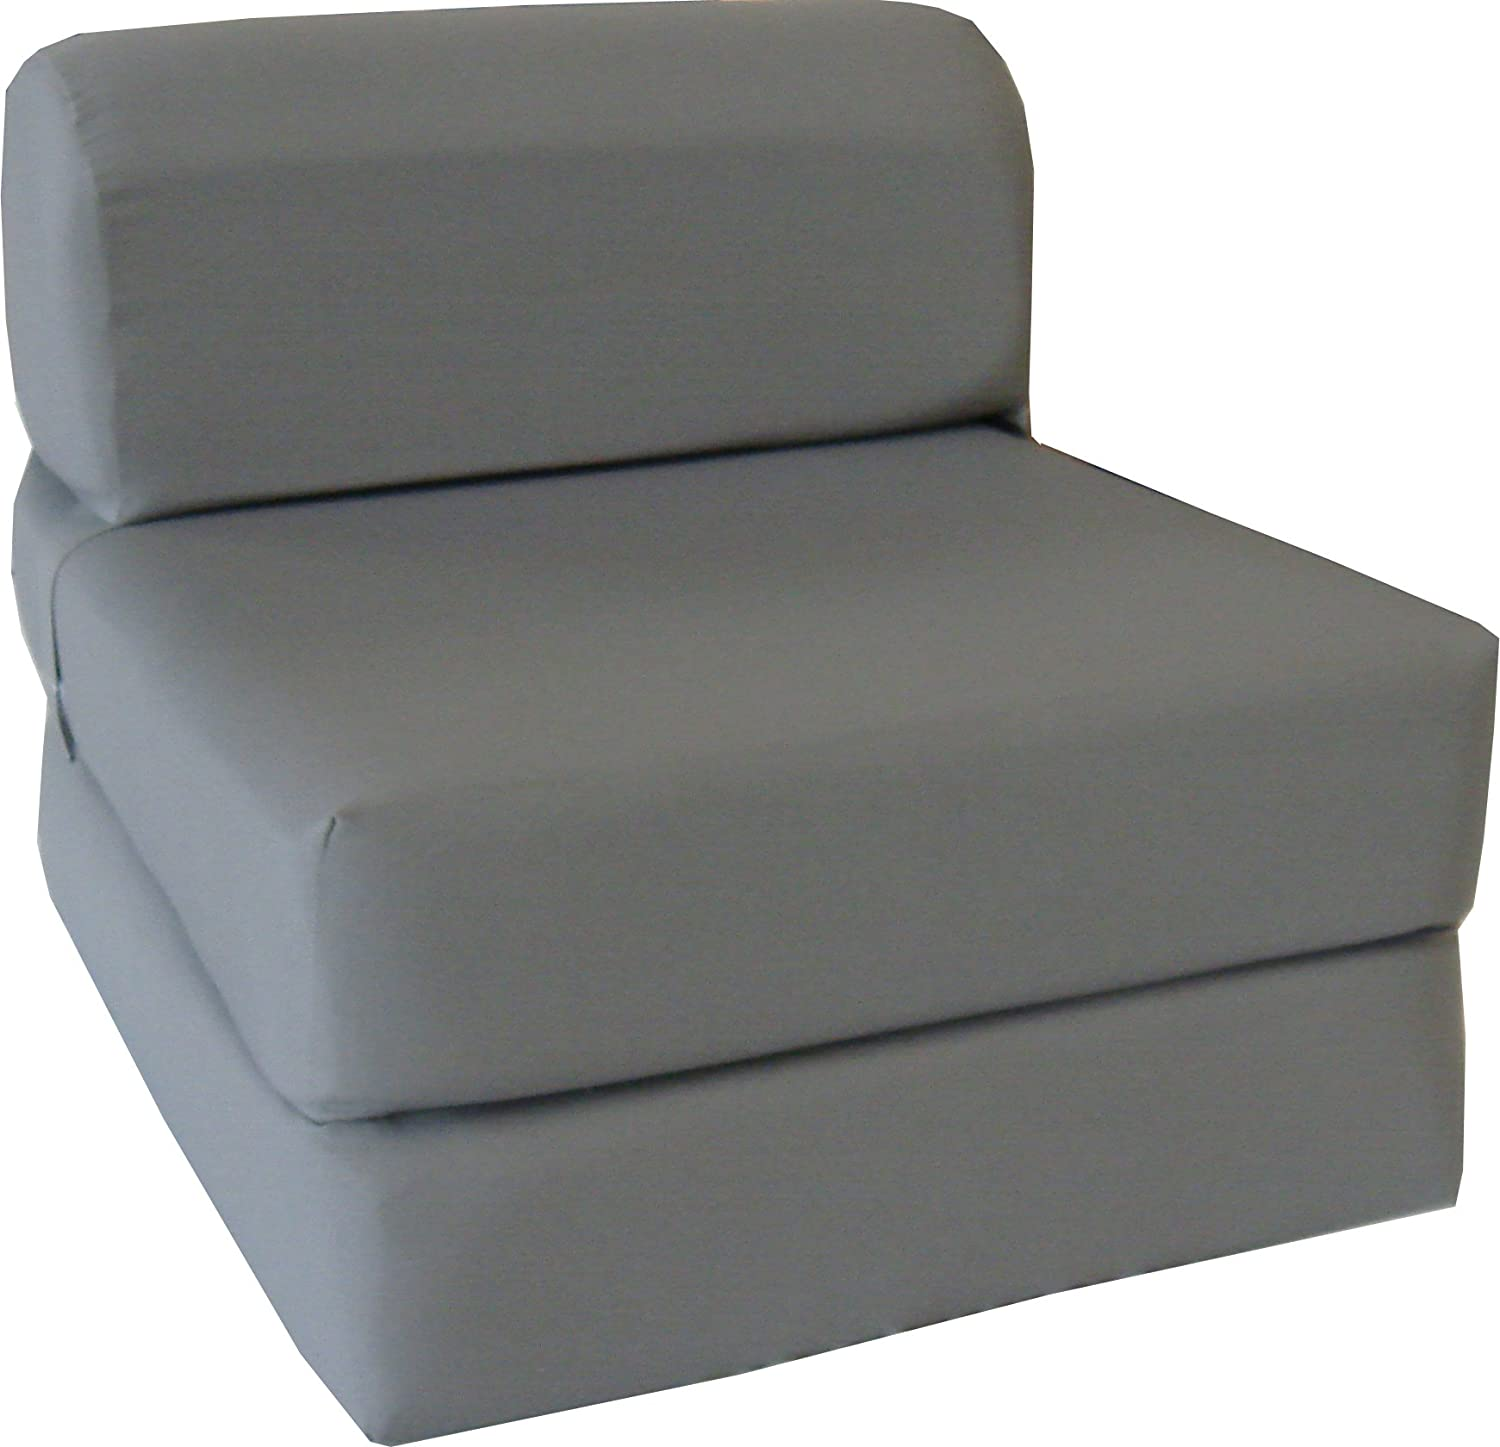 Gray Sleeper Chair Folding Foam Bed